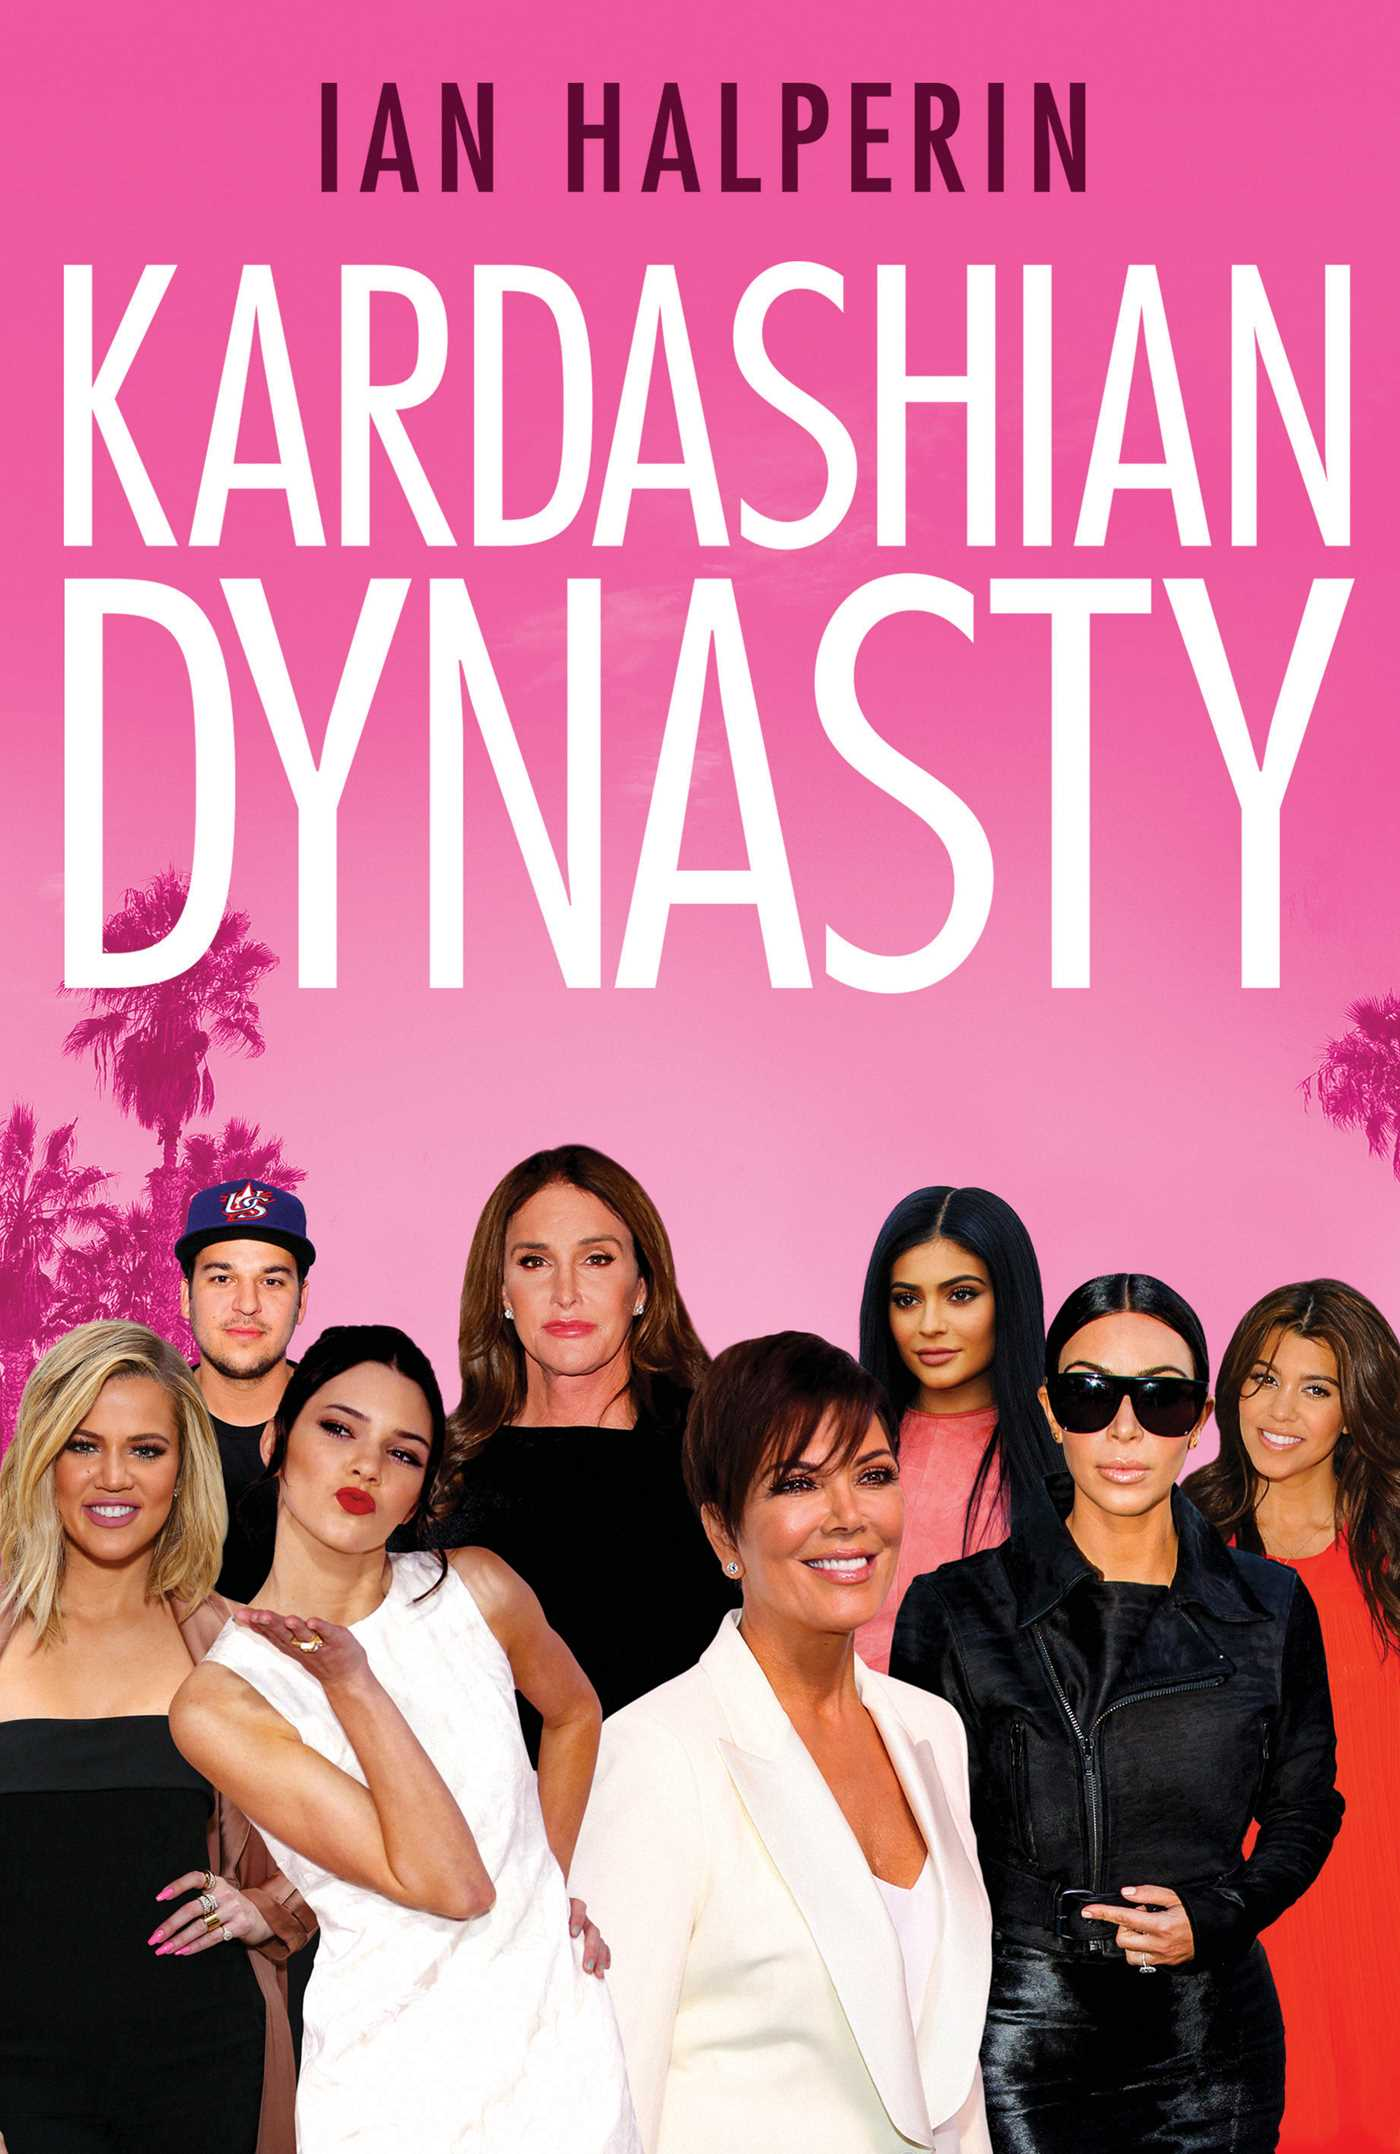 Kardashian Dynasty | Book by Ian Halperin | Official Publisher Page ...